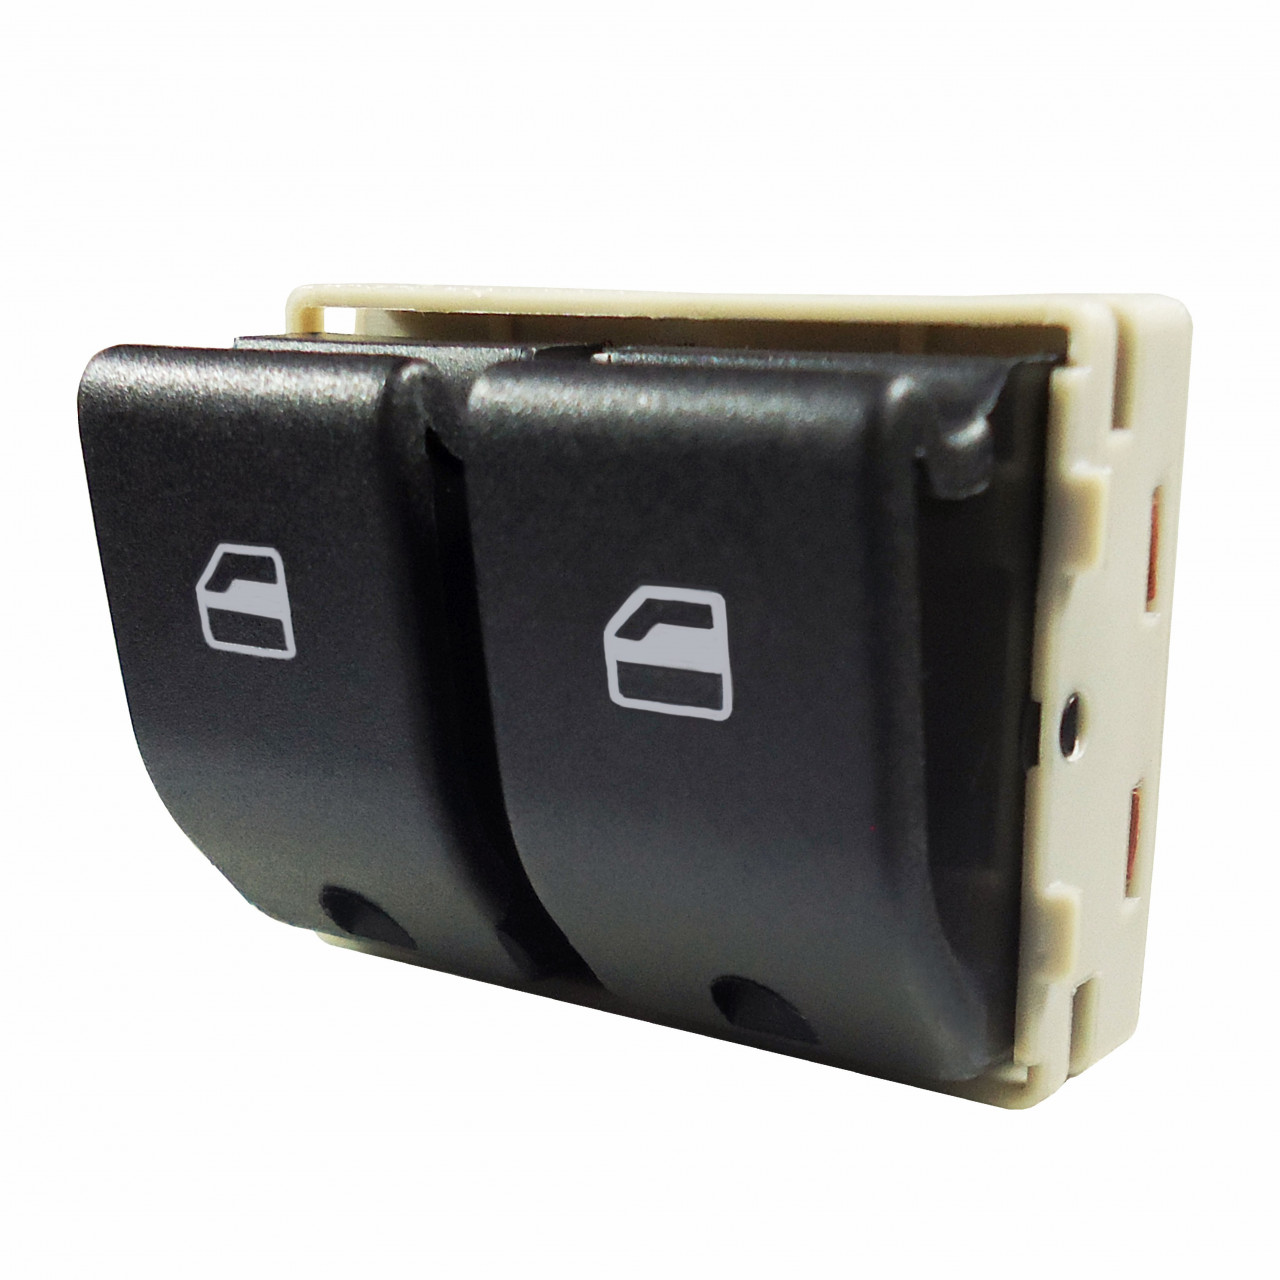 DNI2407 – VW / Audi 6Q0959858A Double Electric Glass Switch – 12V – Switch